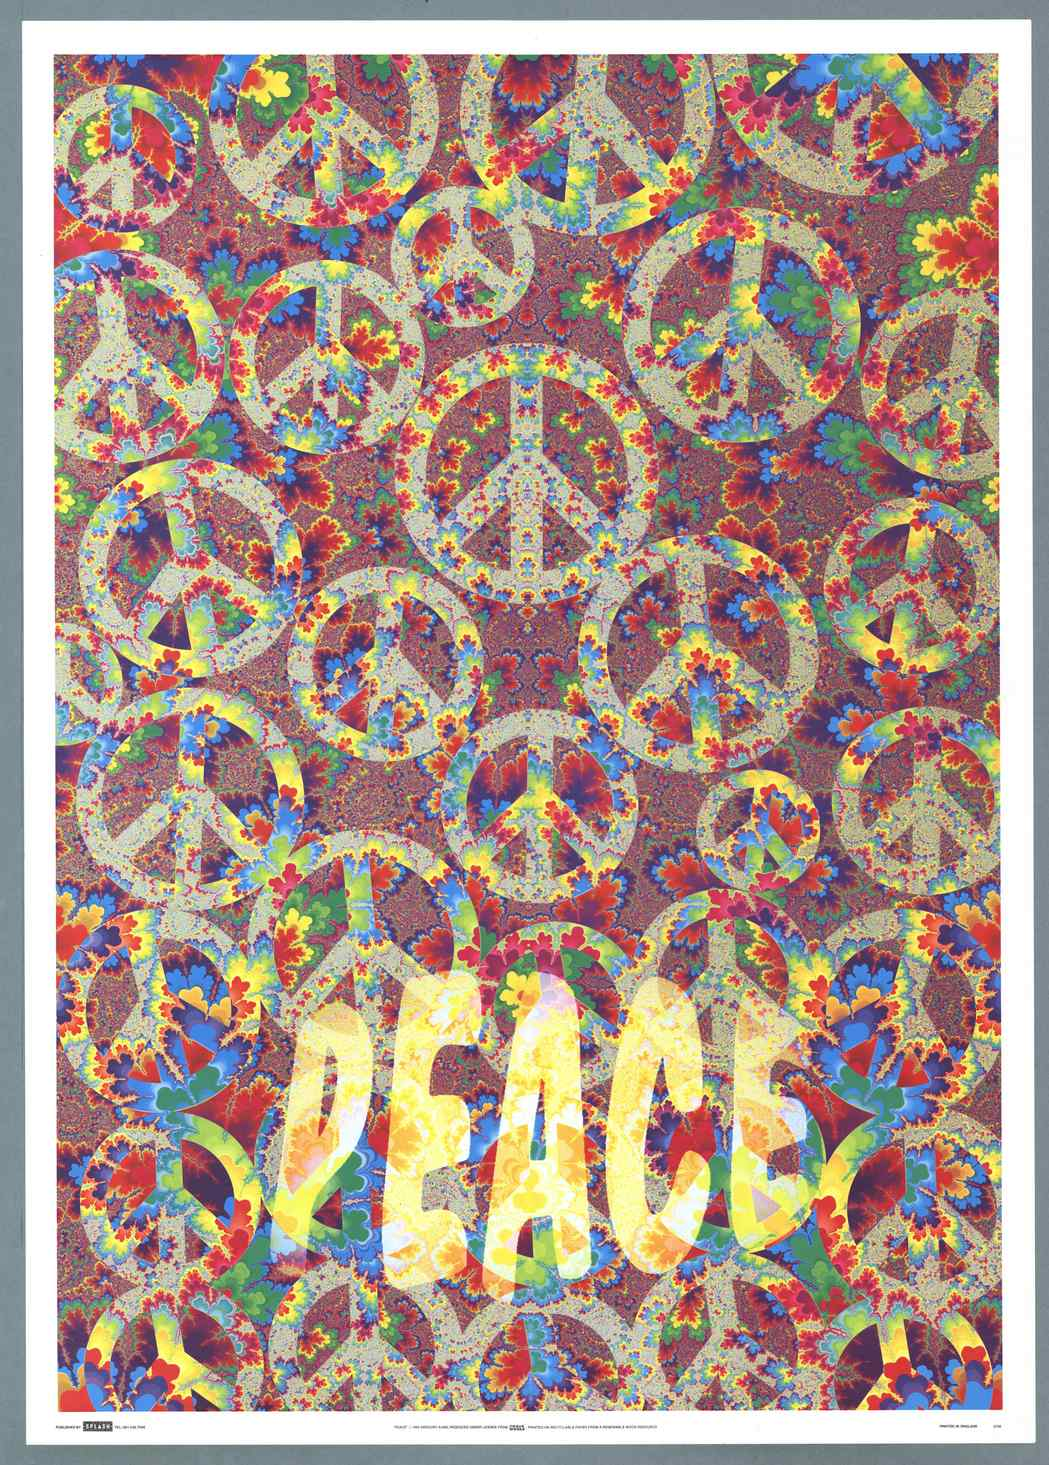 IISH Collections | Poster | Peace | Poster by Gregory Sams (1994)